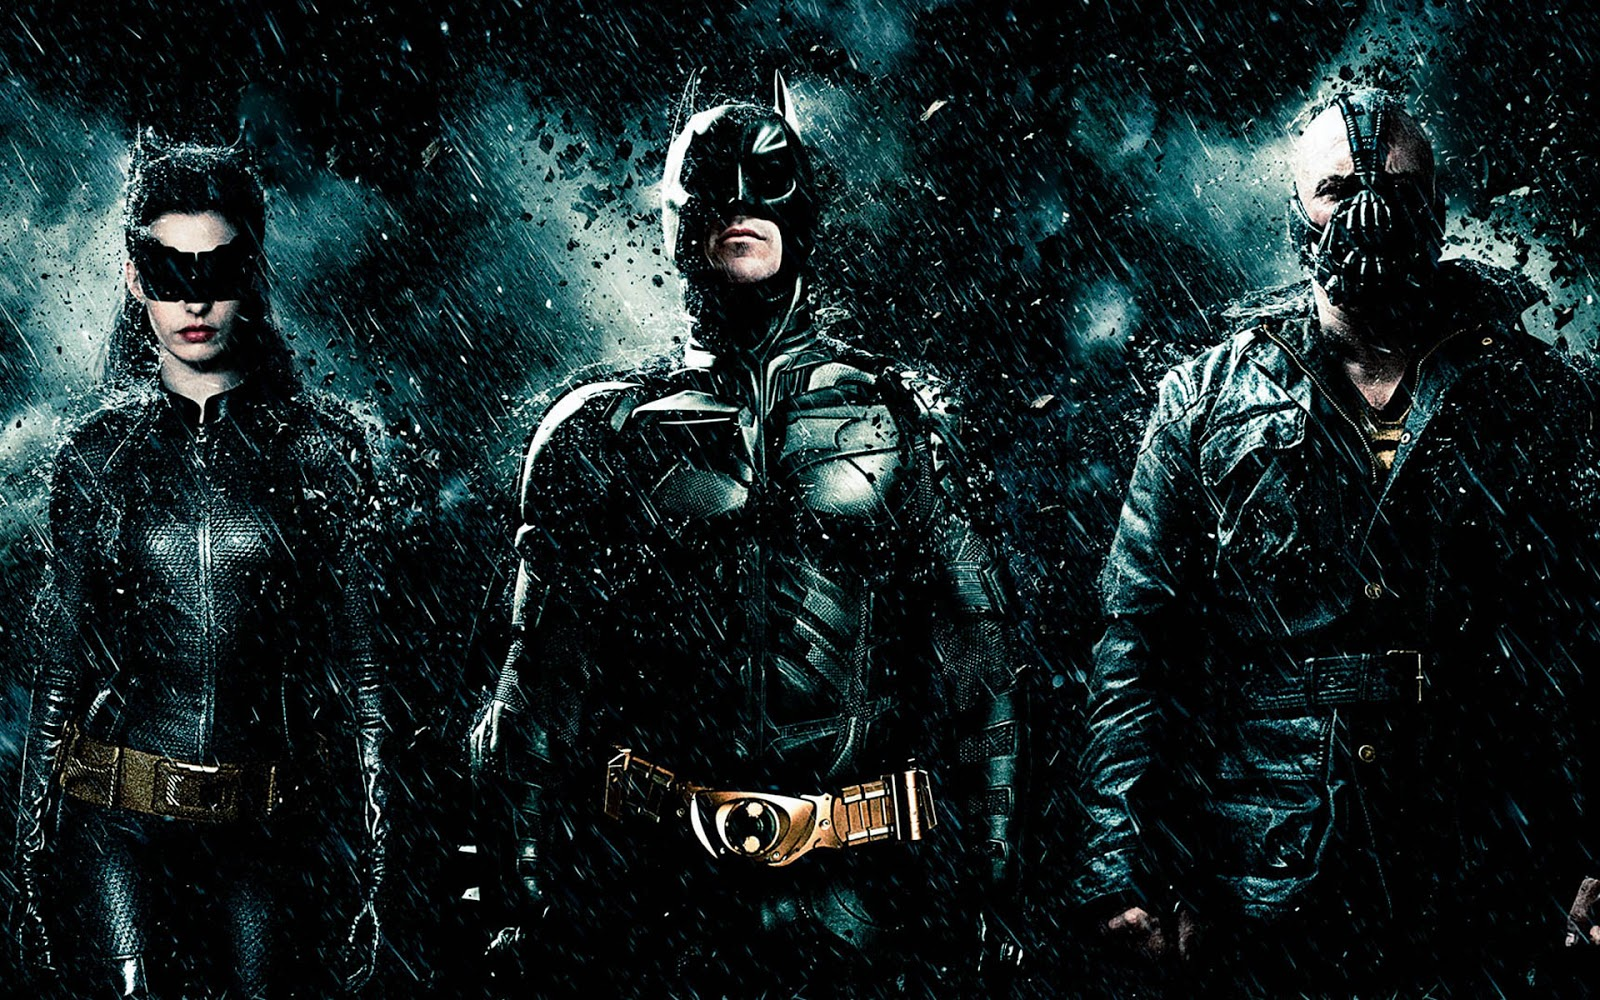 http://1.bp.blogspot.com/-FnumGA38svE/UPB_1rIB9ZI/AAAAAAAAFng/eQeeIjEMSFk/s1600/The-Dark-Knight-Rises-problems.jpg